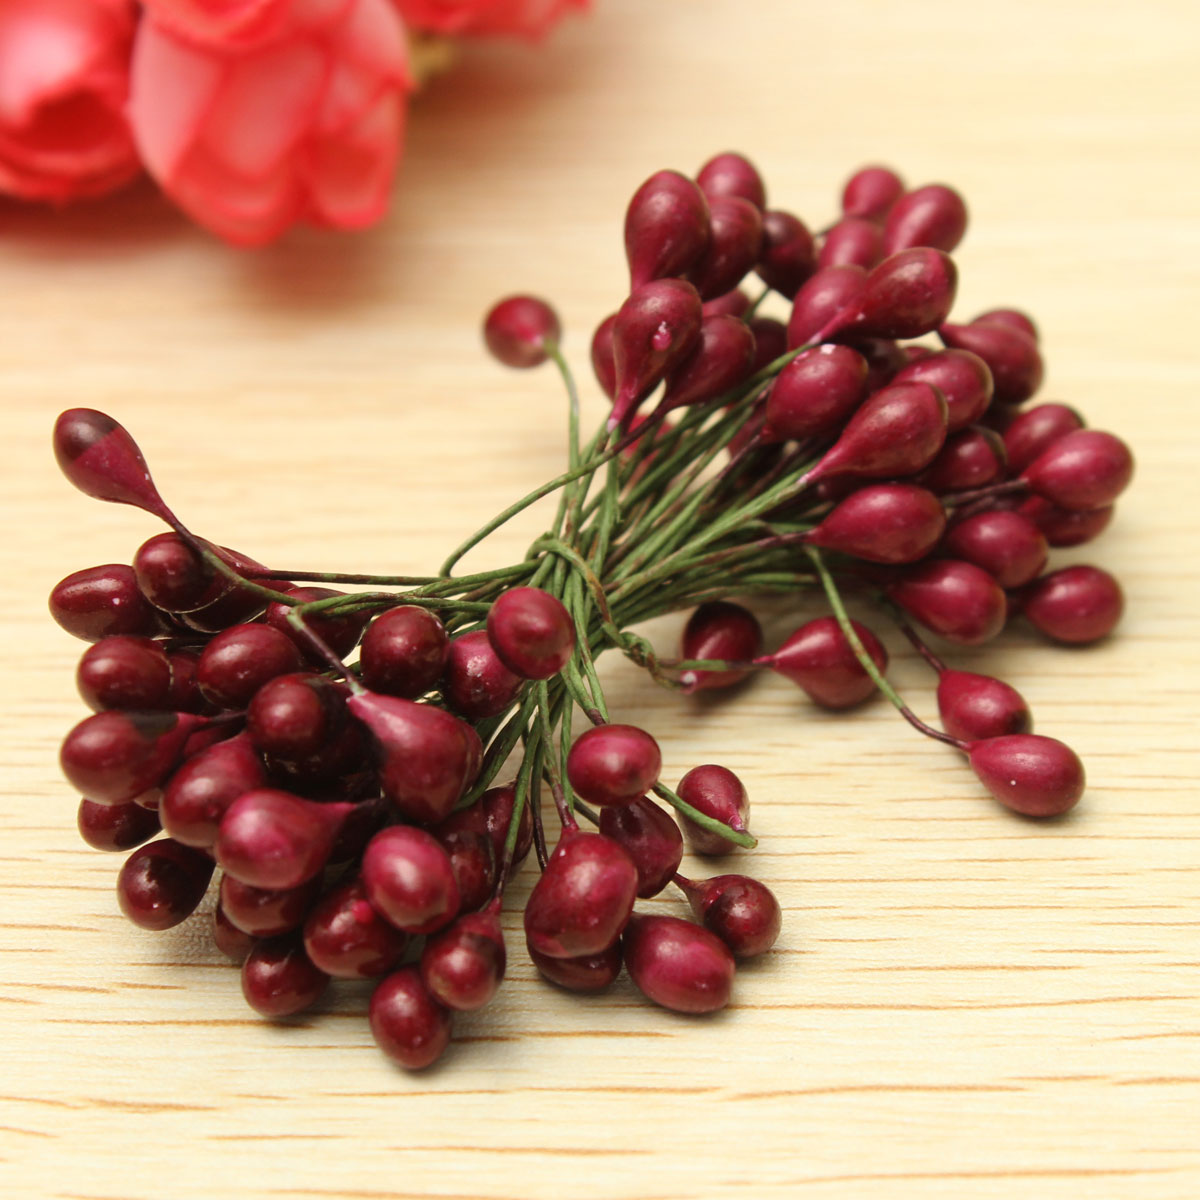 100pcs Artificial Red Holly Berry Berries 8mm Home Garland. Address Home Decor. Outdoor Wall Decor Ideas. Waterfall Decoration. Basketball Office Decor. Home Interior Decor. French Provincial Living Room Furniture. Aviation Decor. Summer Home Decor